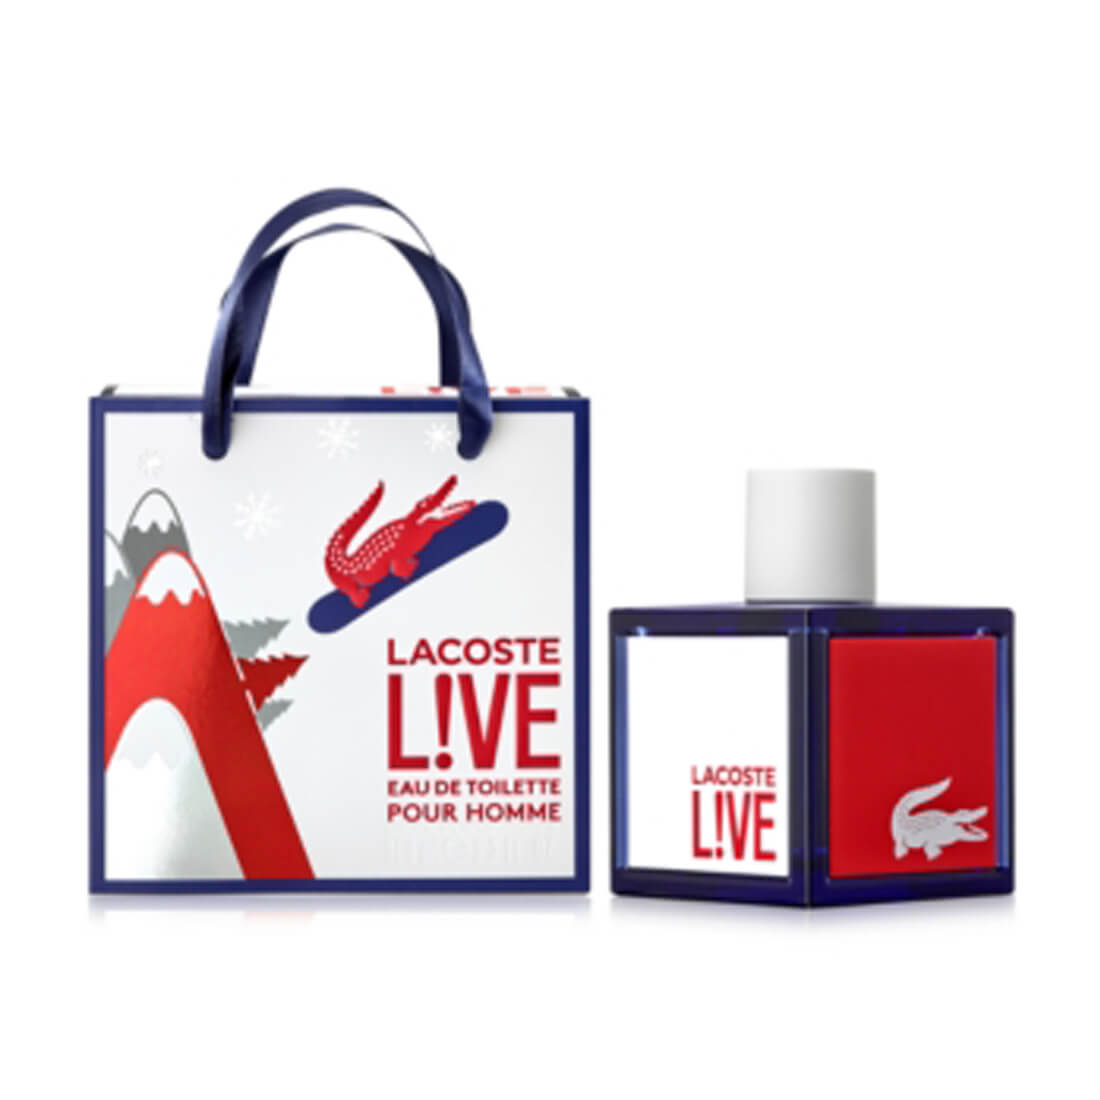 Lacoste Live Pour Homme Eau De Toilette For Men - 100ml